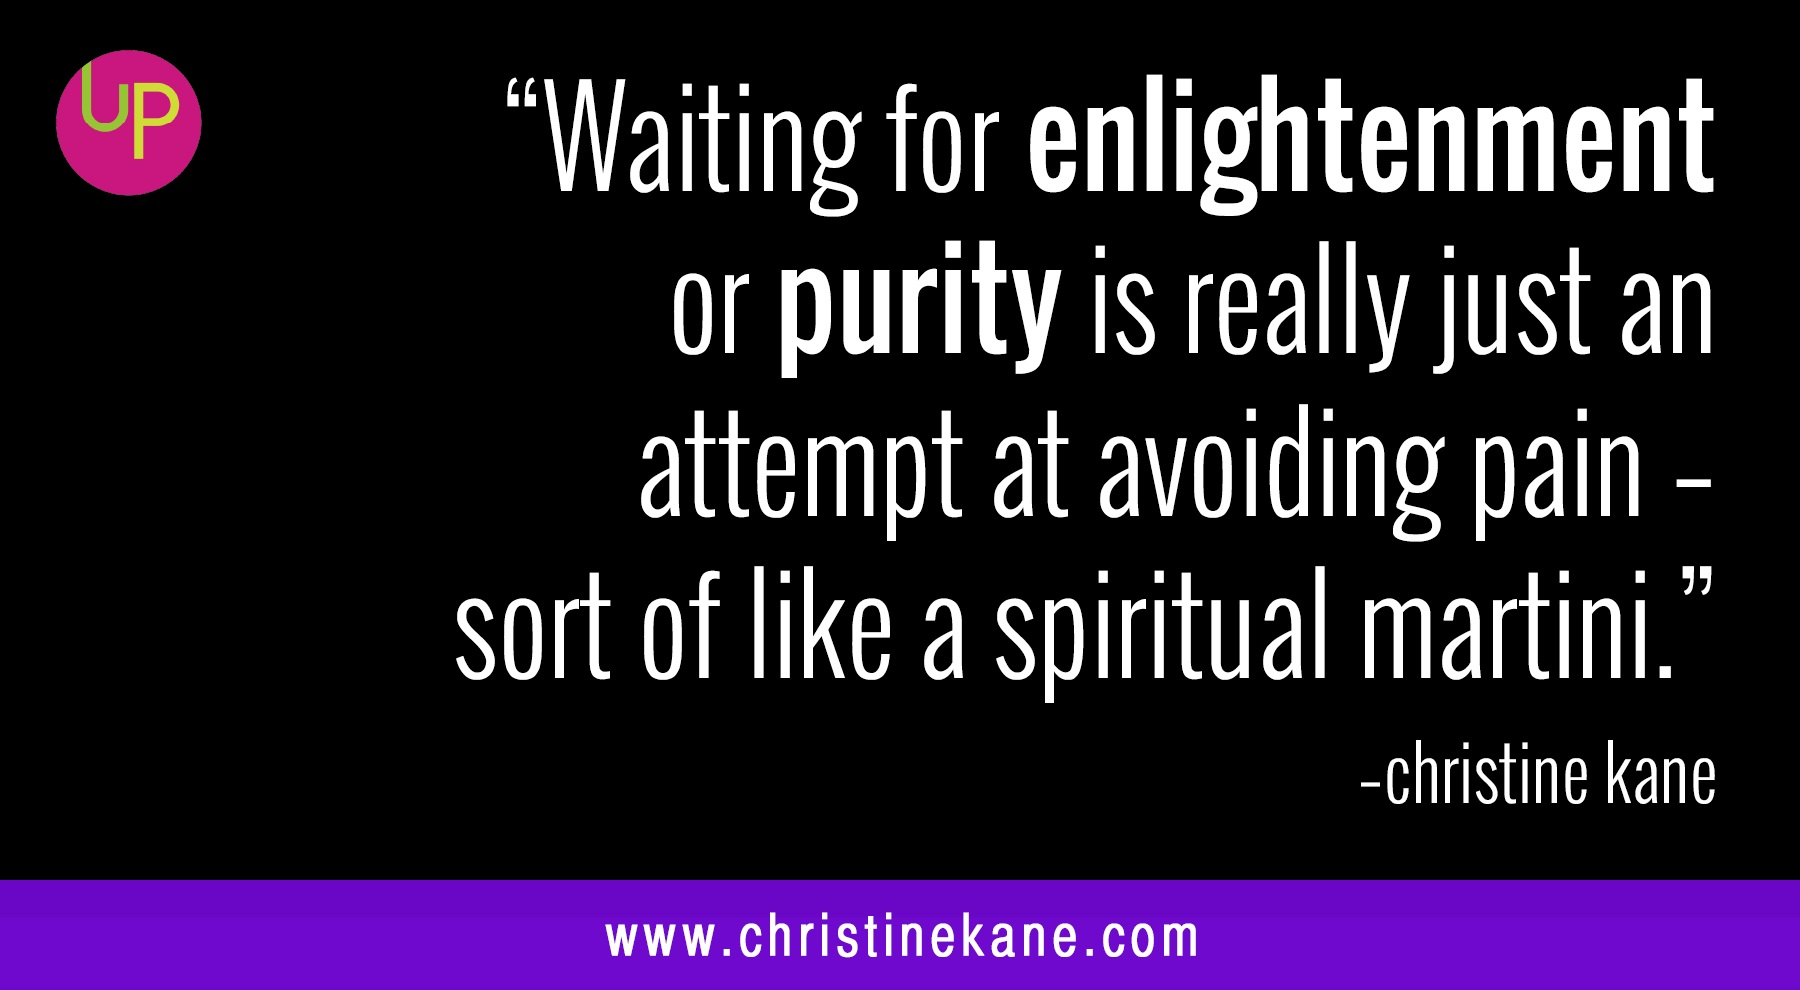 12.10.quote_CK_enltmnt_purity